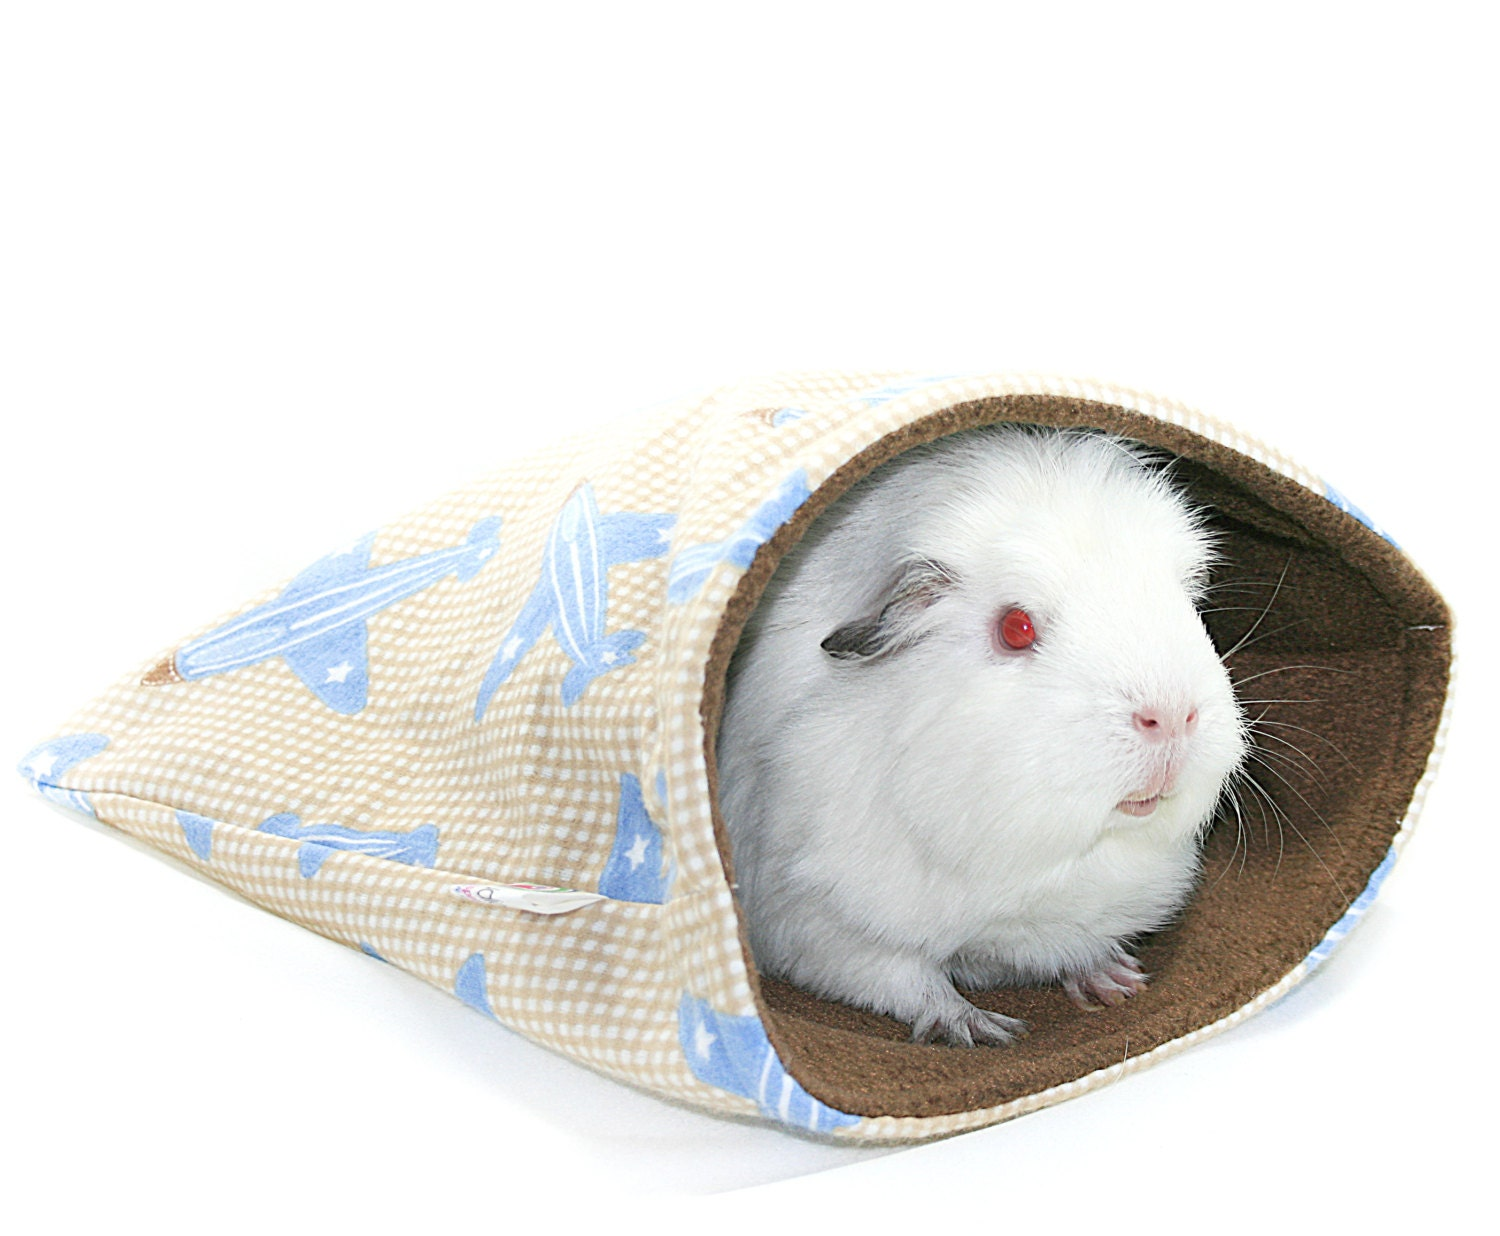 Sleep In Bags for Guinea Pigs Planes by Studio4Paws on Etsy